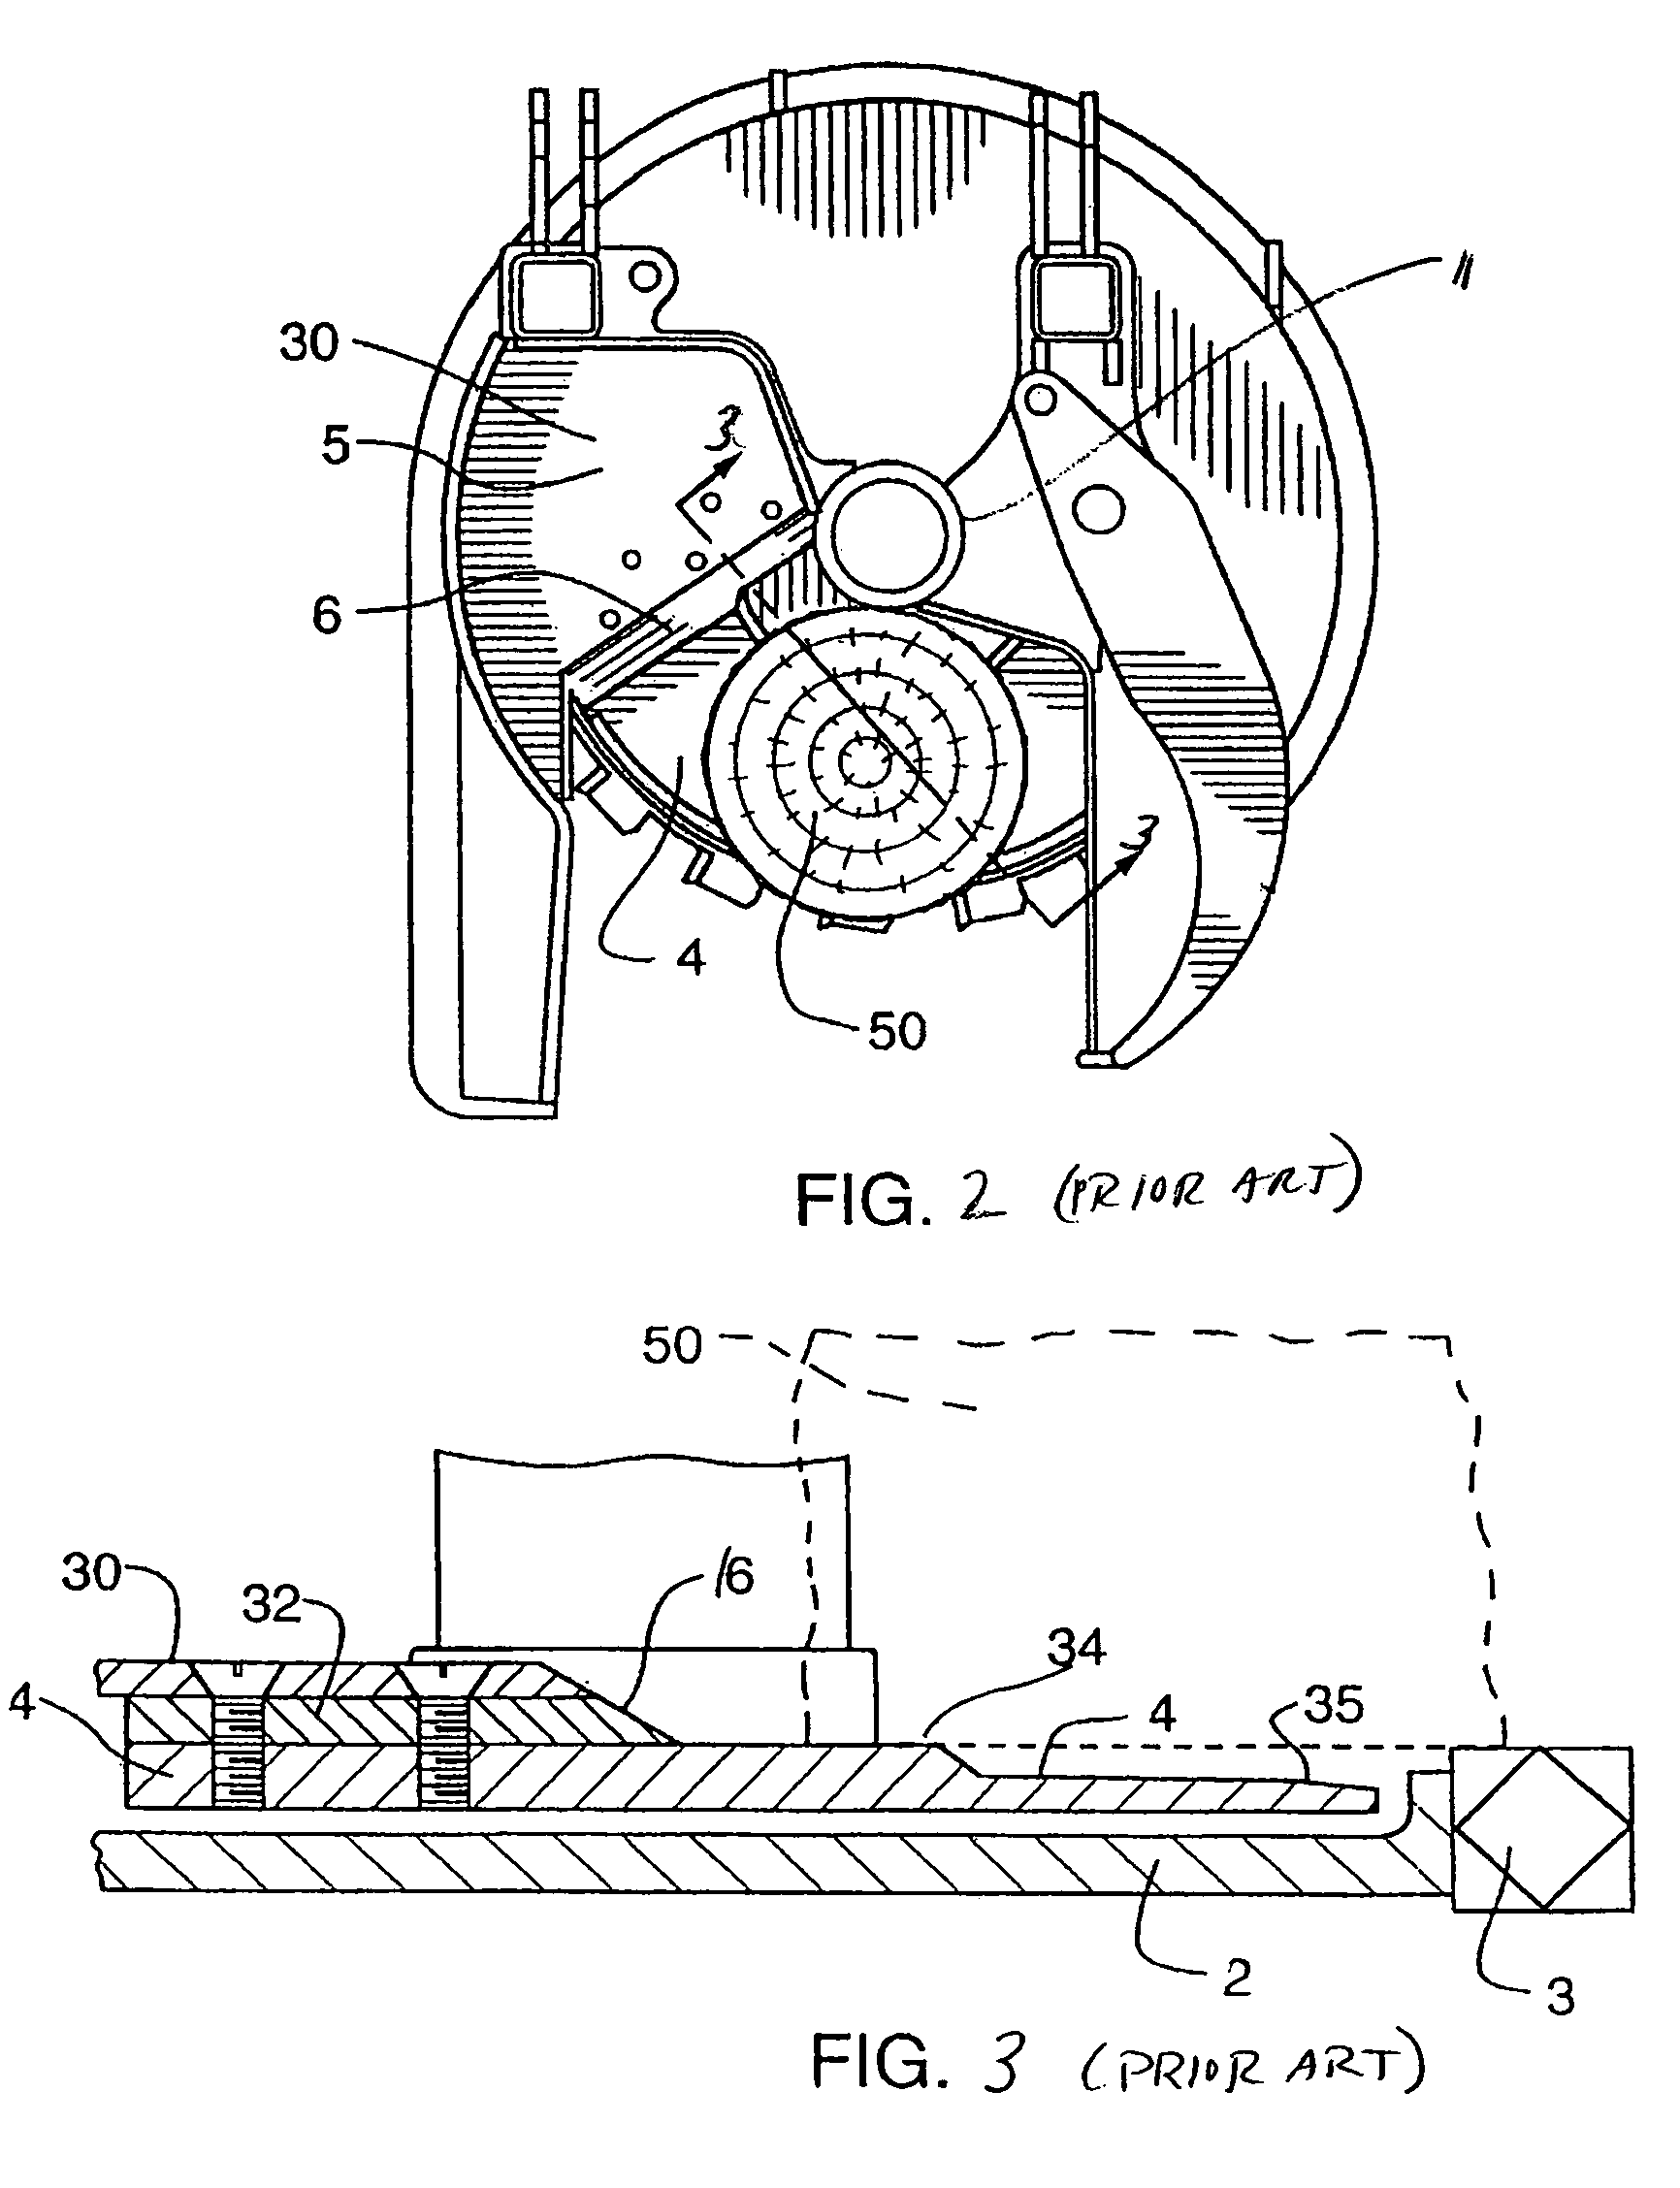 Feller Buncher Drawing Patent Drawing